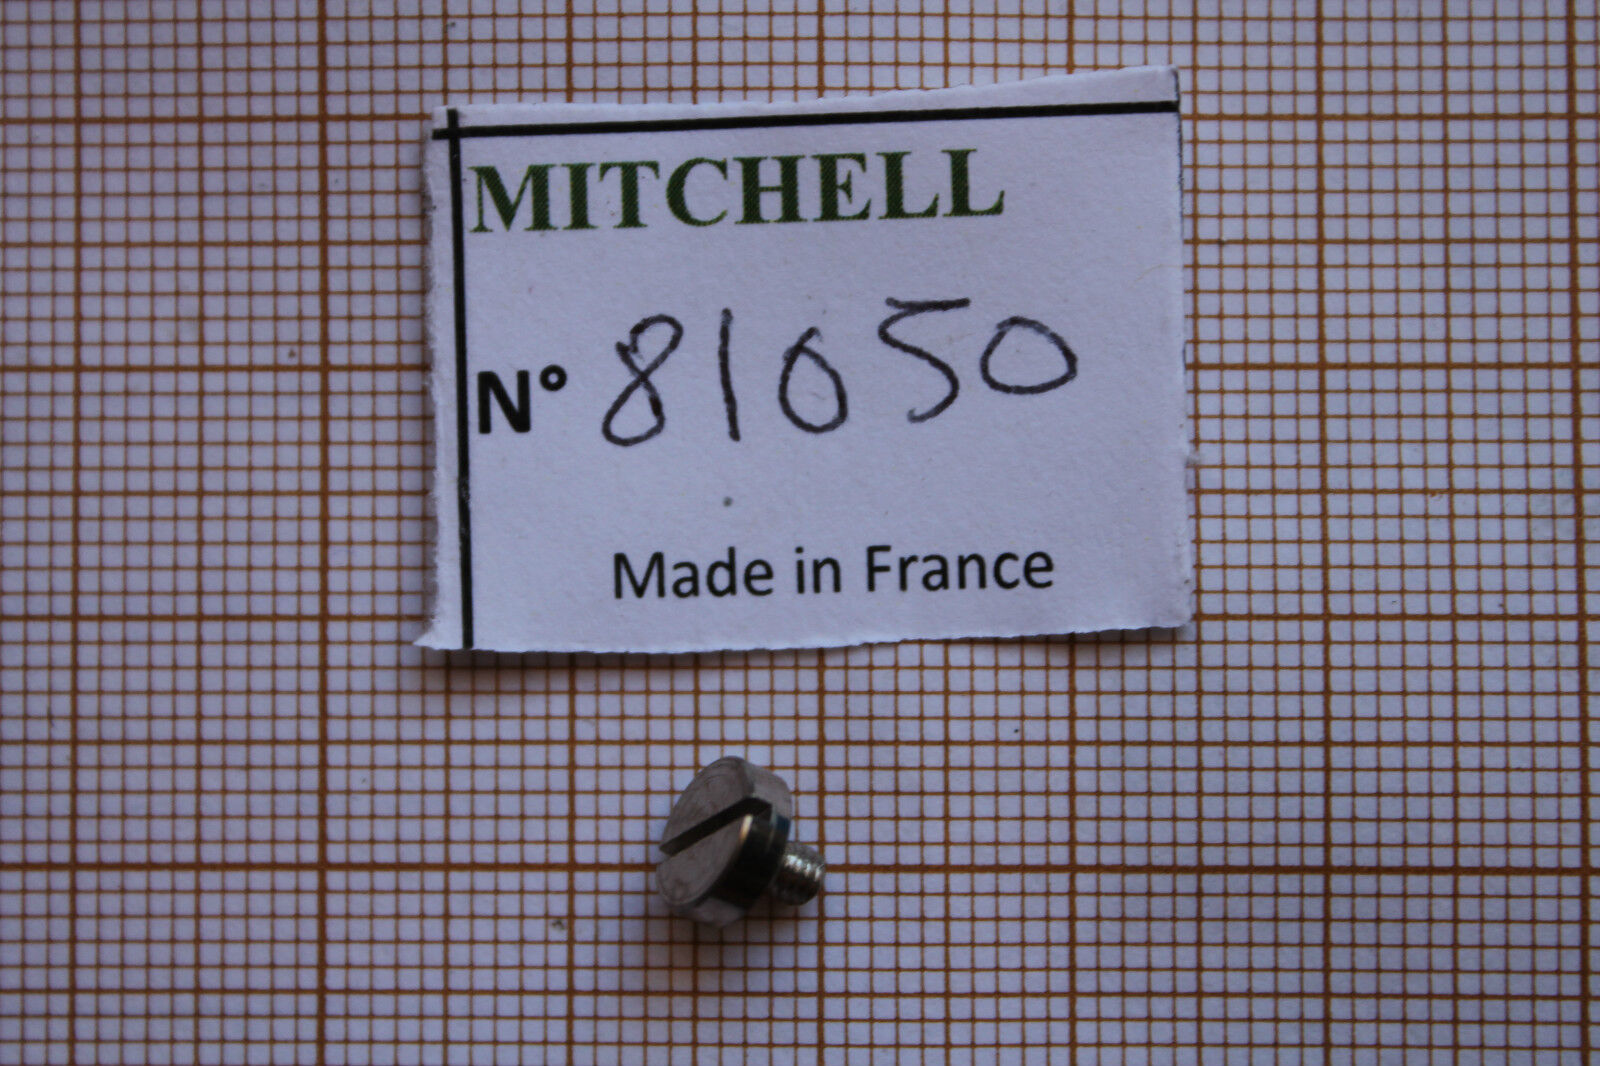 50 300 TRIP LEVER SPRING SCREW REEL PART 81050 VIS 300 50 & divers MOULINETS MITCHELL ddb116